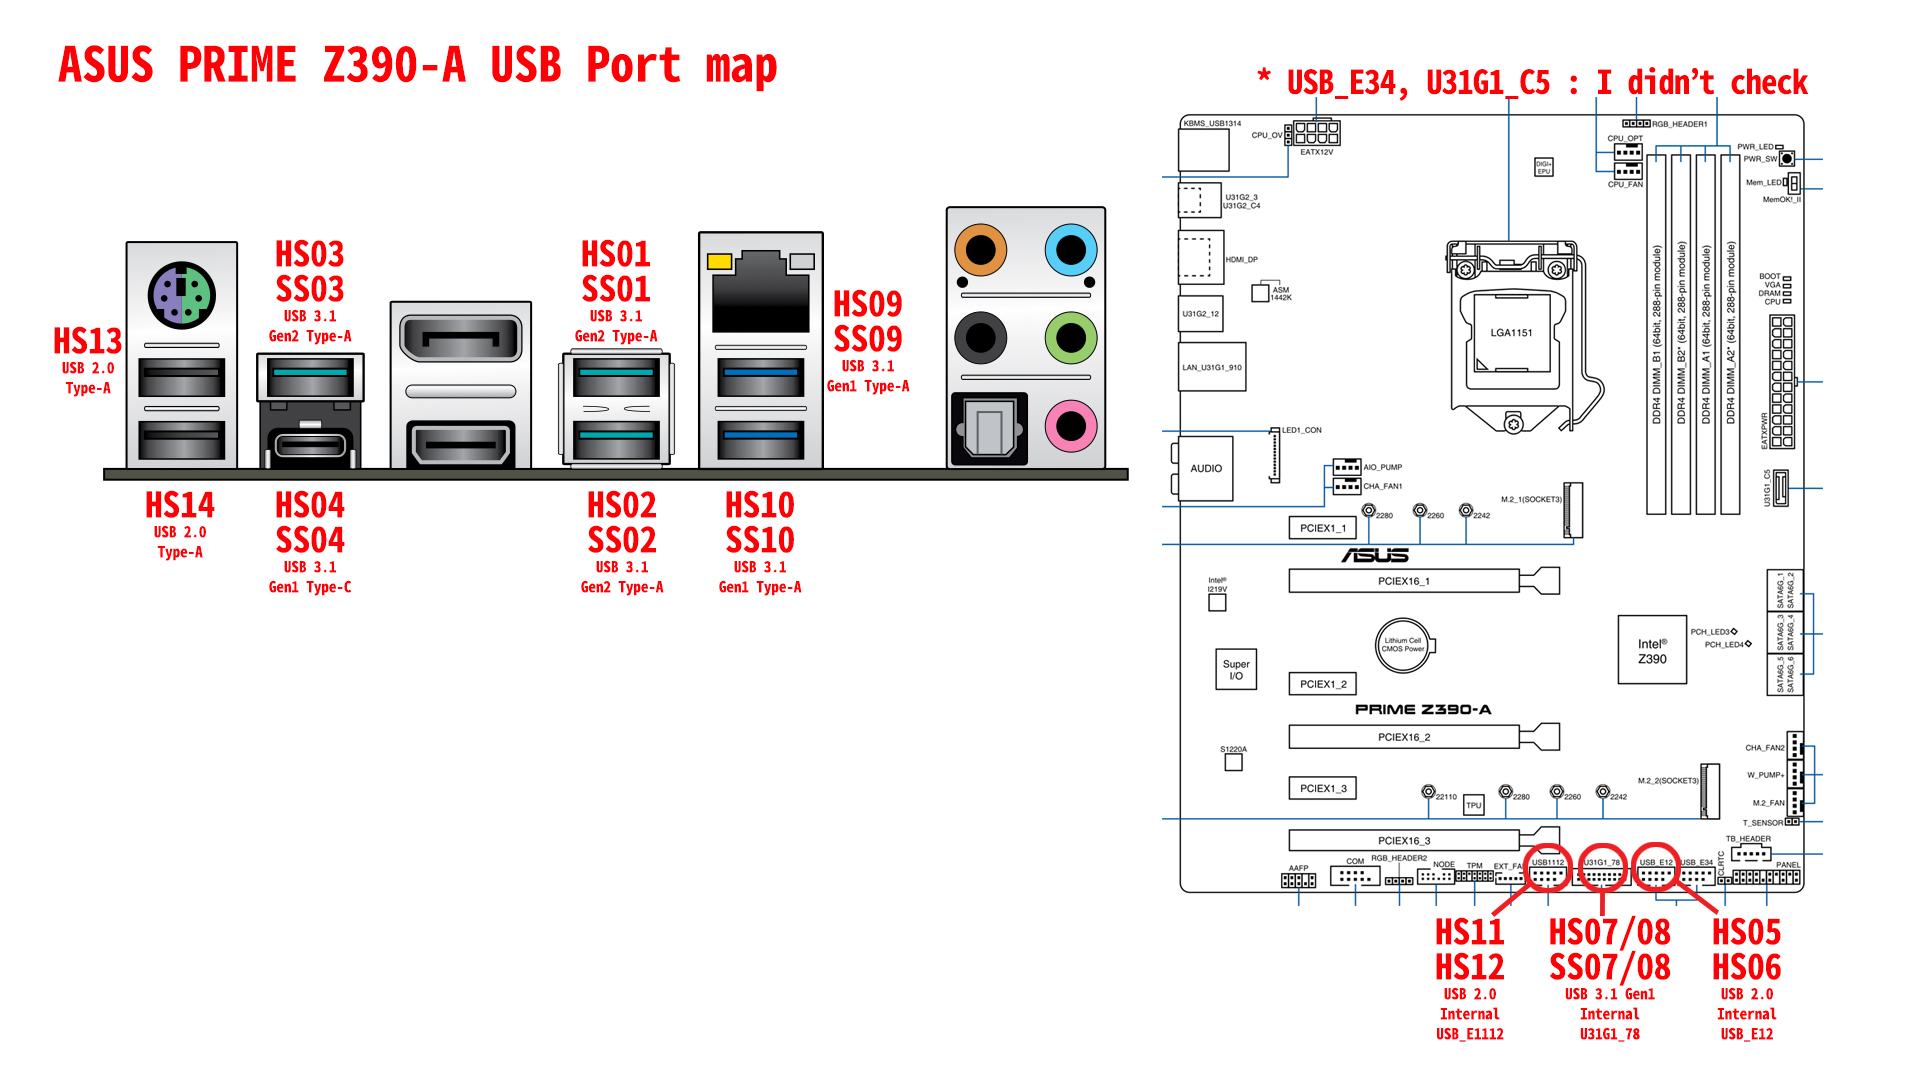 PRIME Z390-A - USB port map final